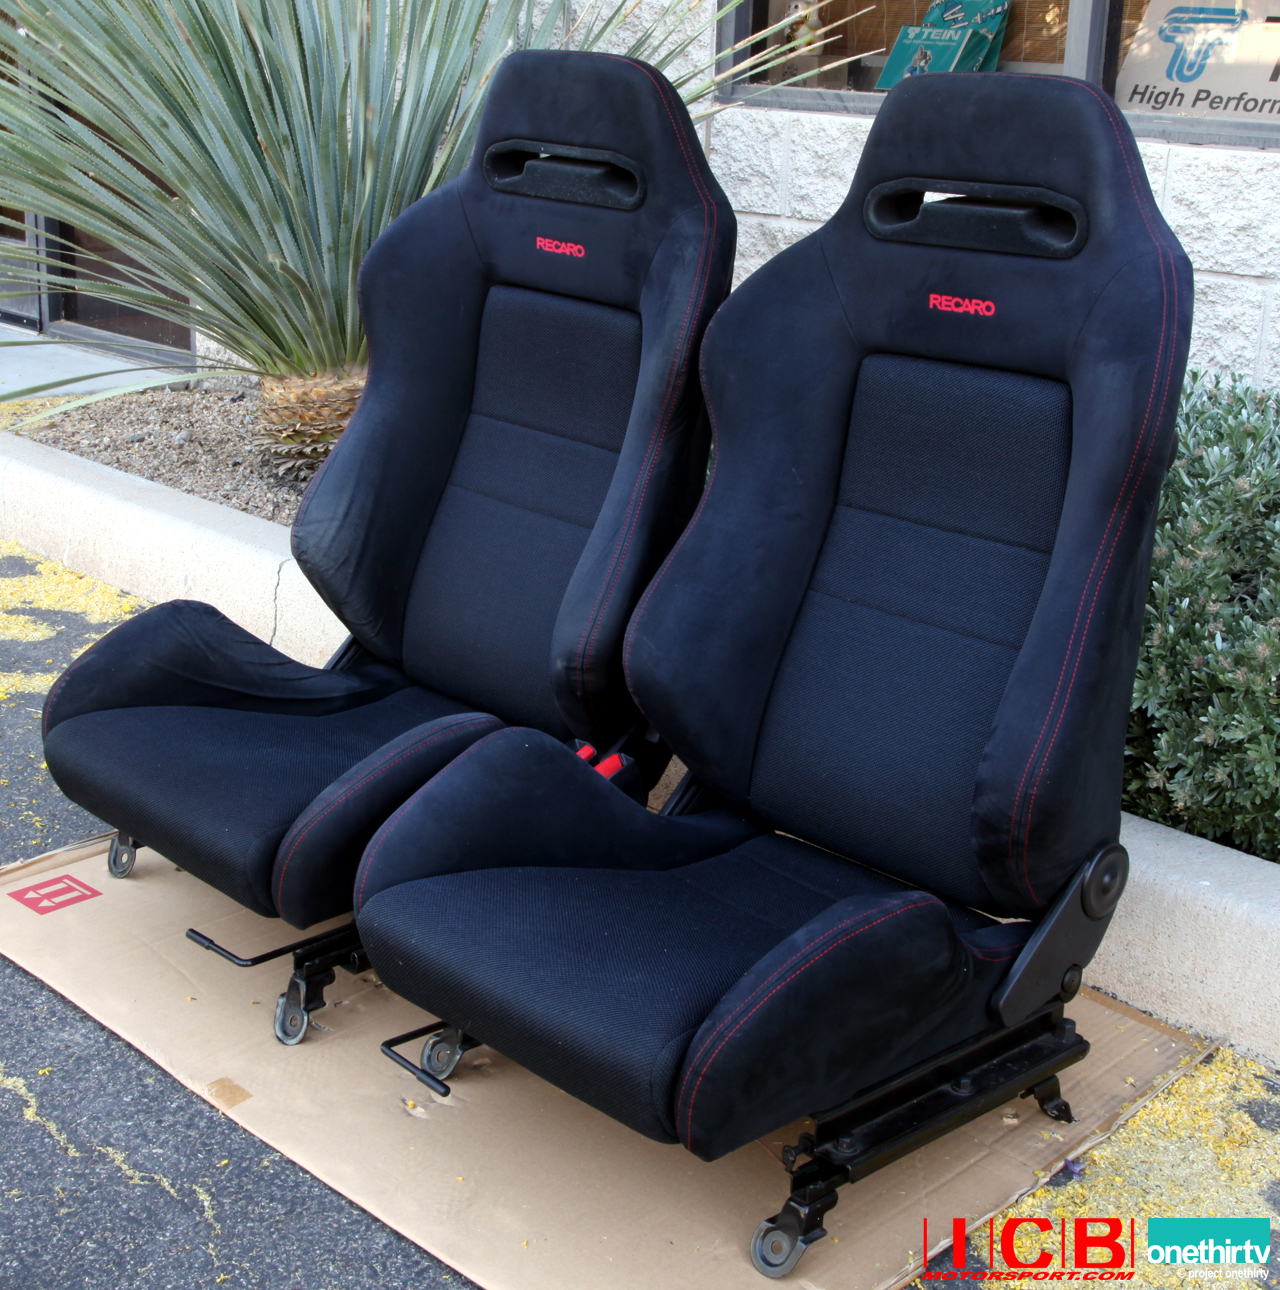 Used Honda Db8 Integra Type R Black Recaro Seats Sold